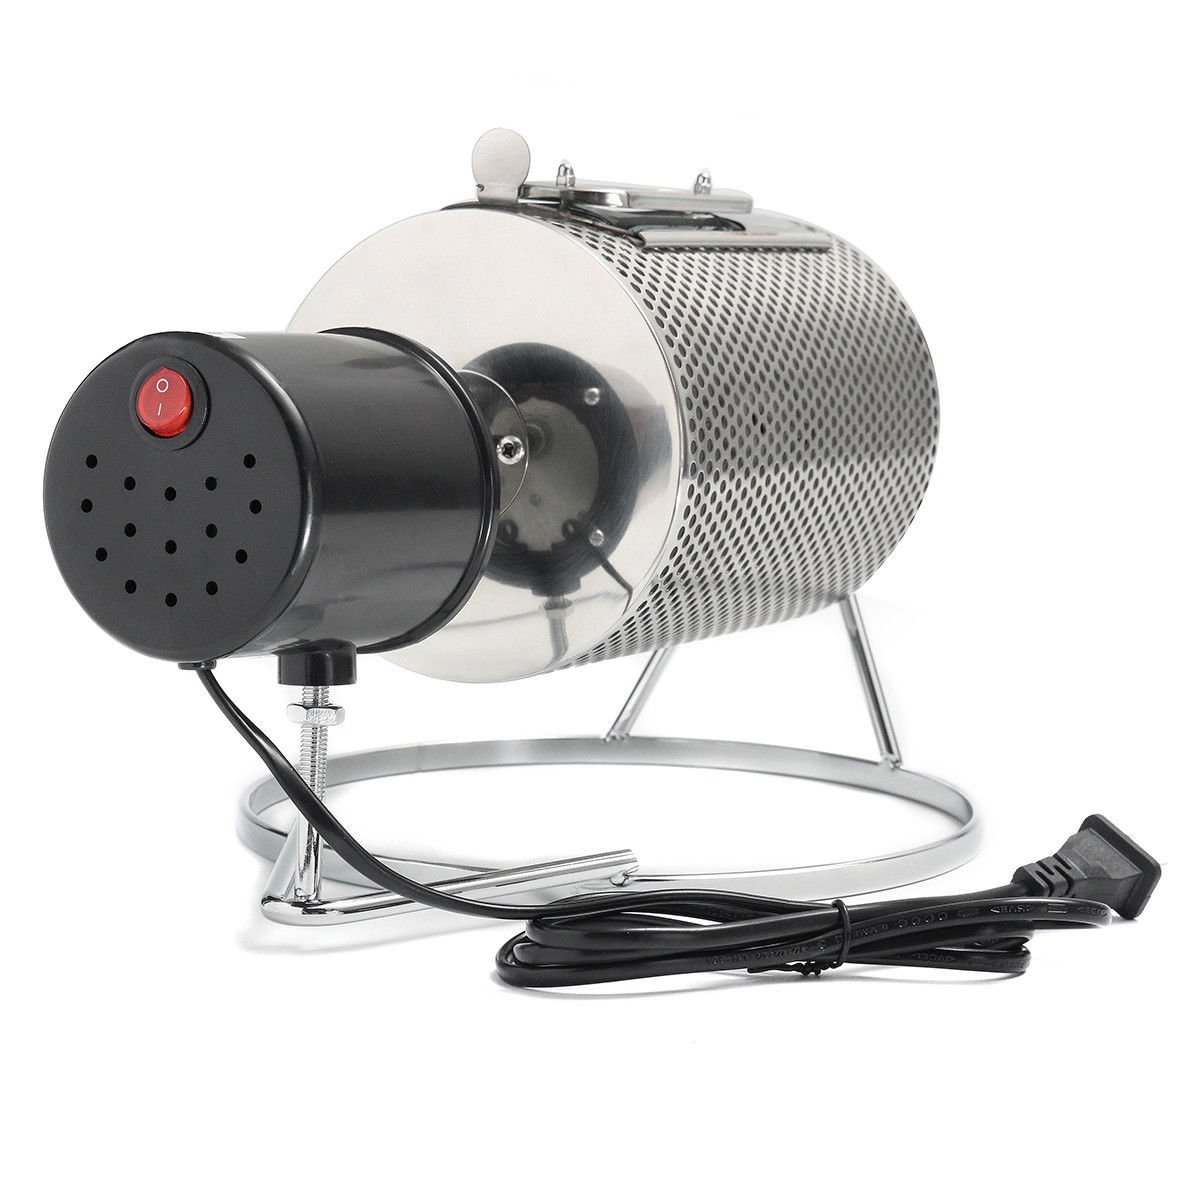 TOPCHANCES 110V Home Kitchen Stainless Steel Coffee Roaster Machine